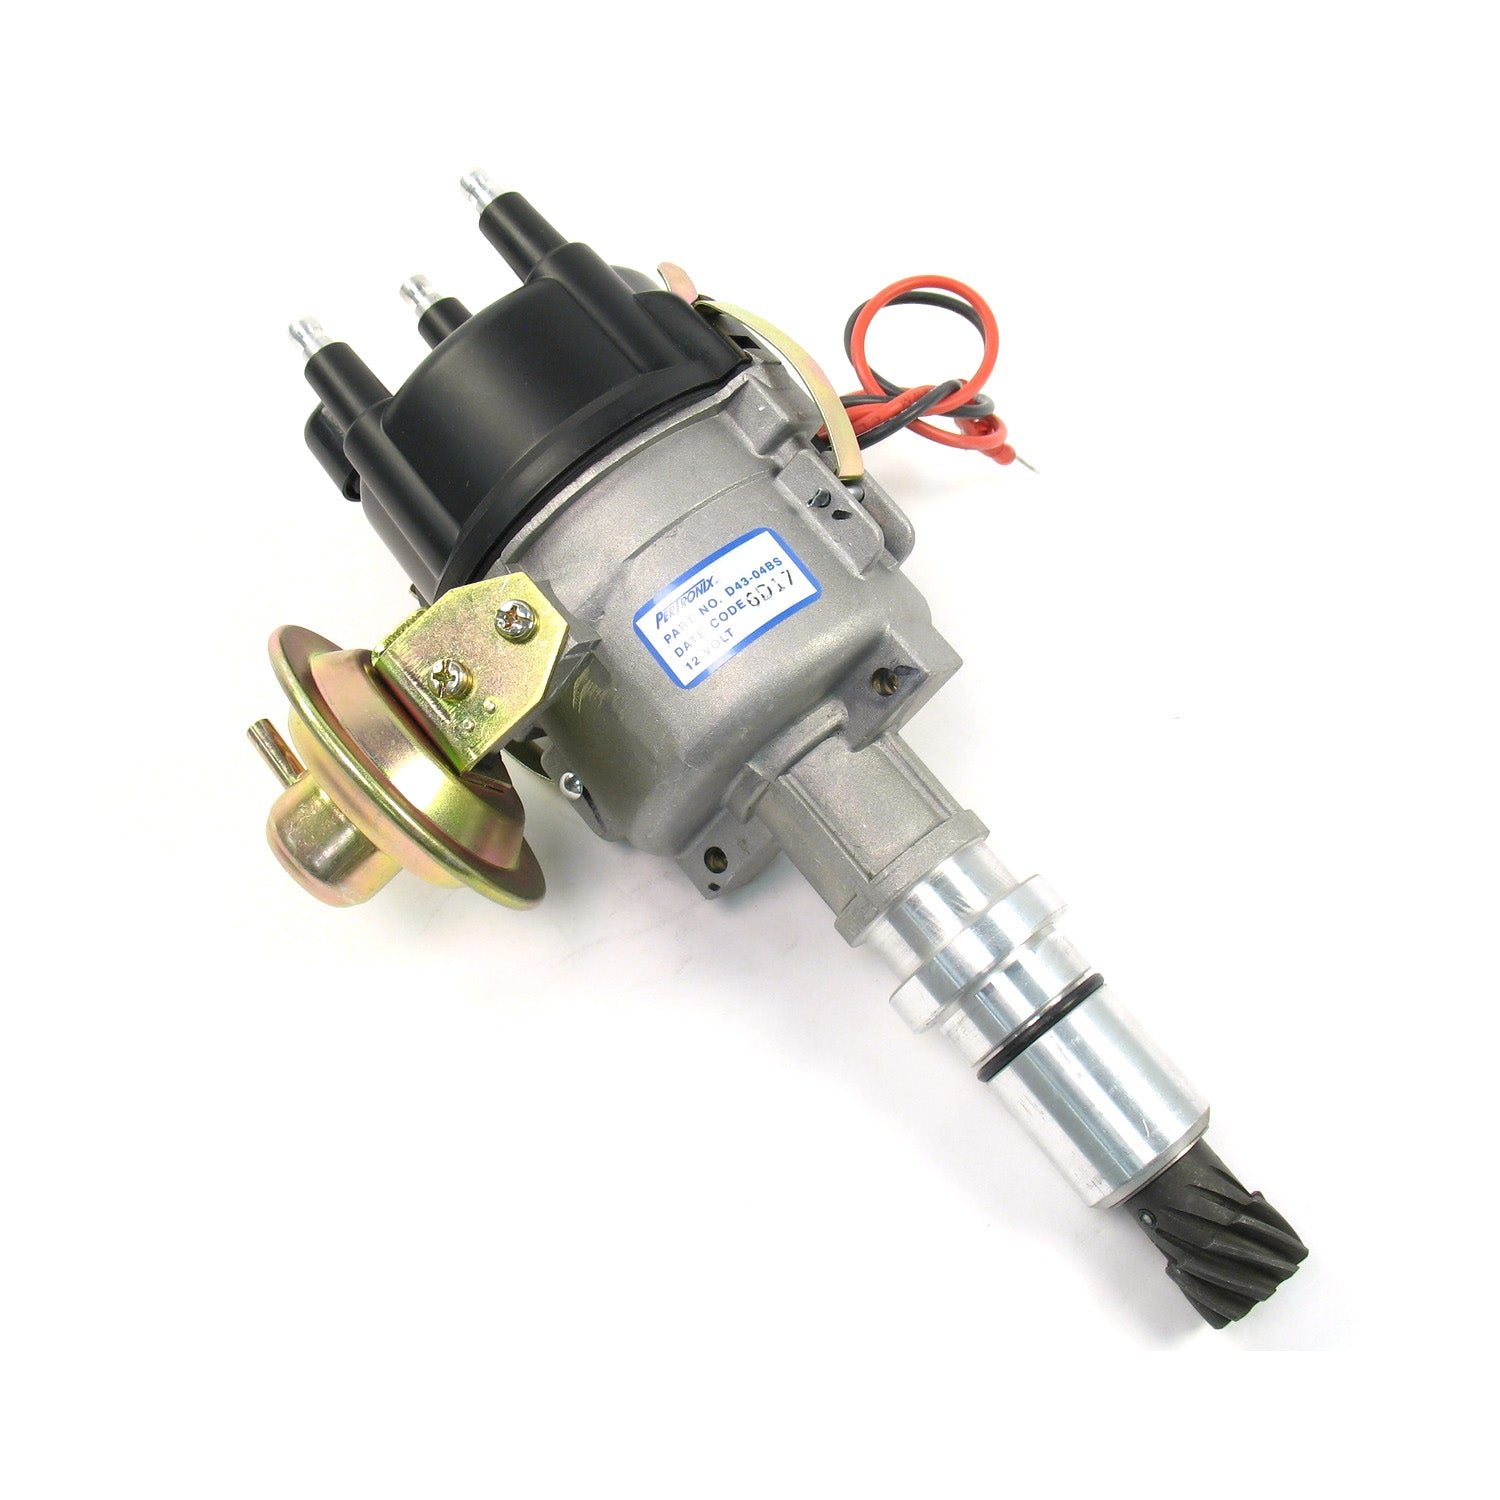 PerTronix D43-04B Distributor Industrial Continental 4 cyl